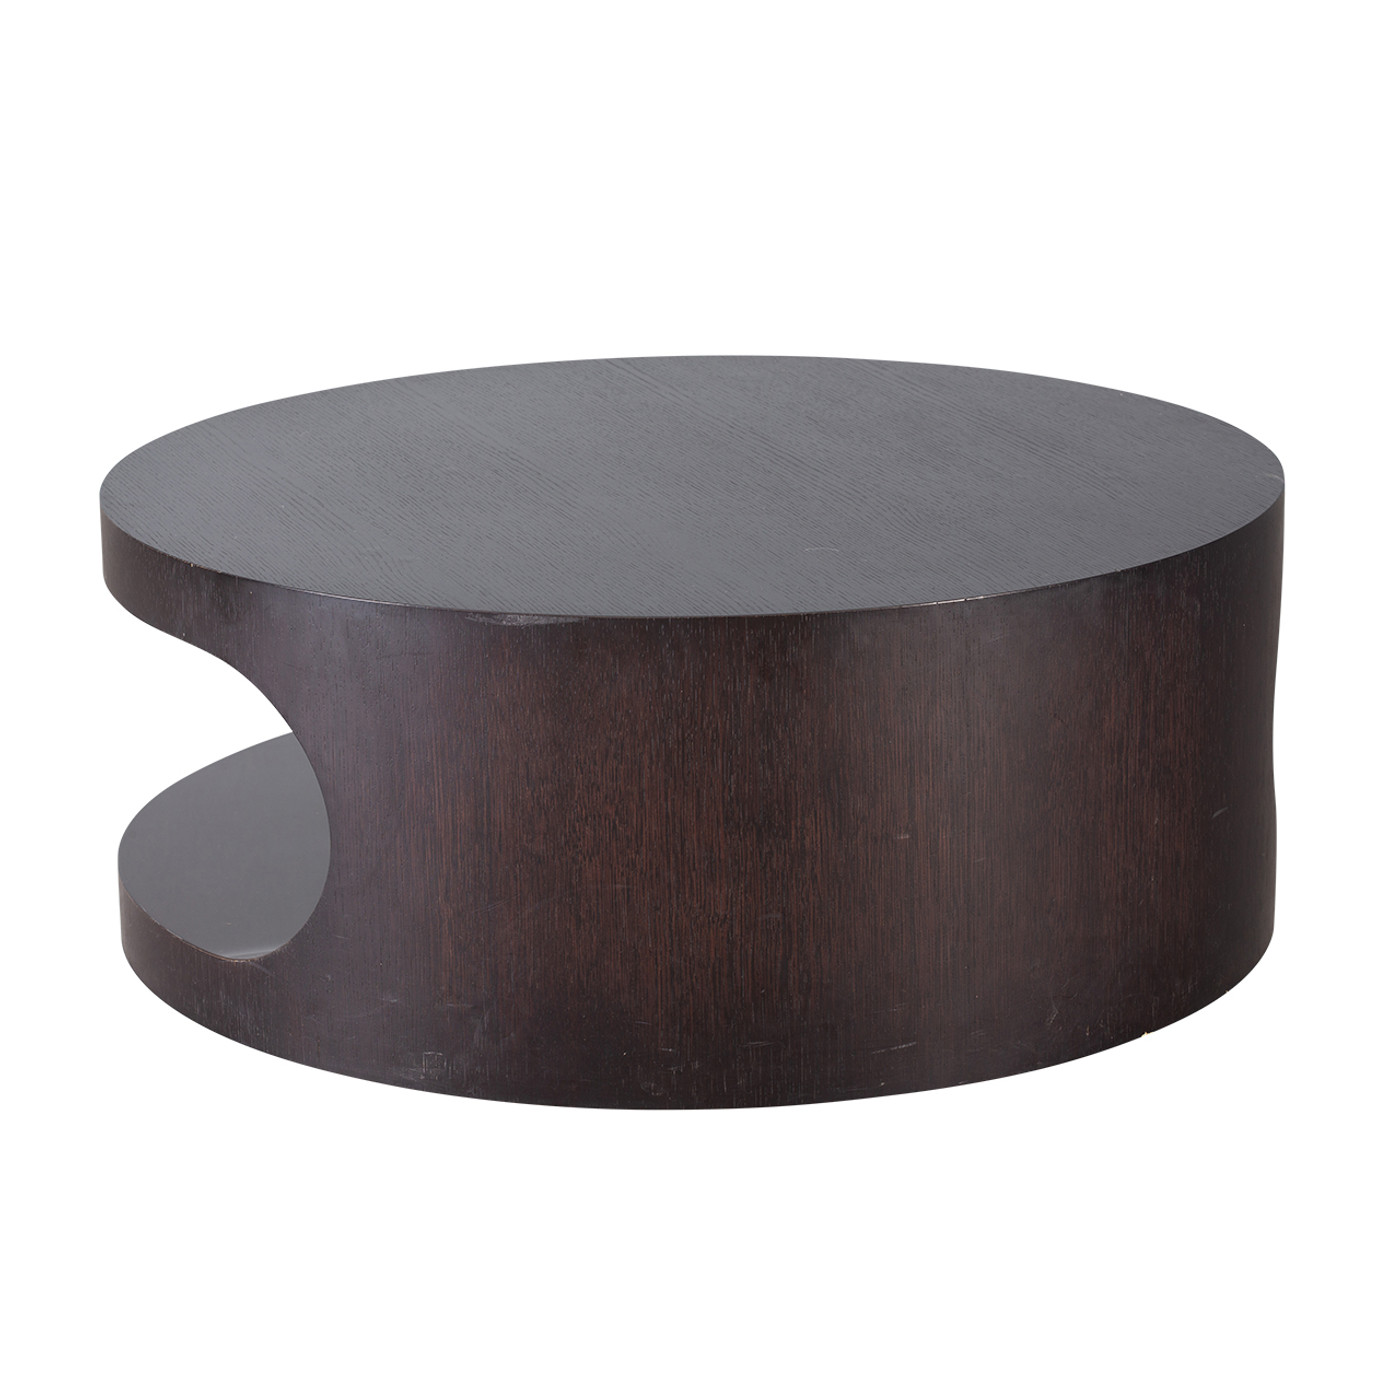 Cocktail Table by Gordon Guillaumier for Minotti